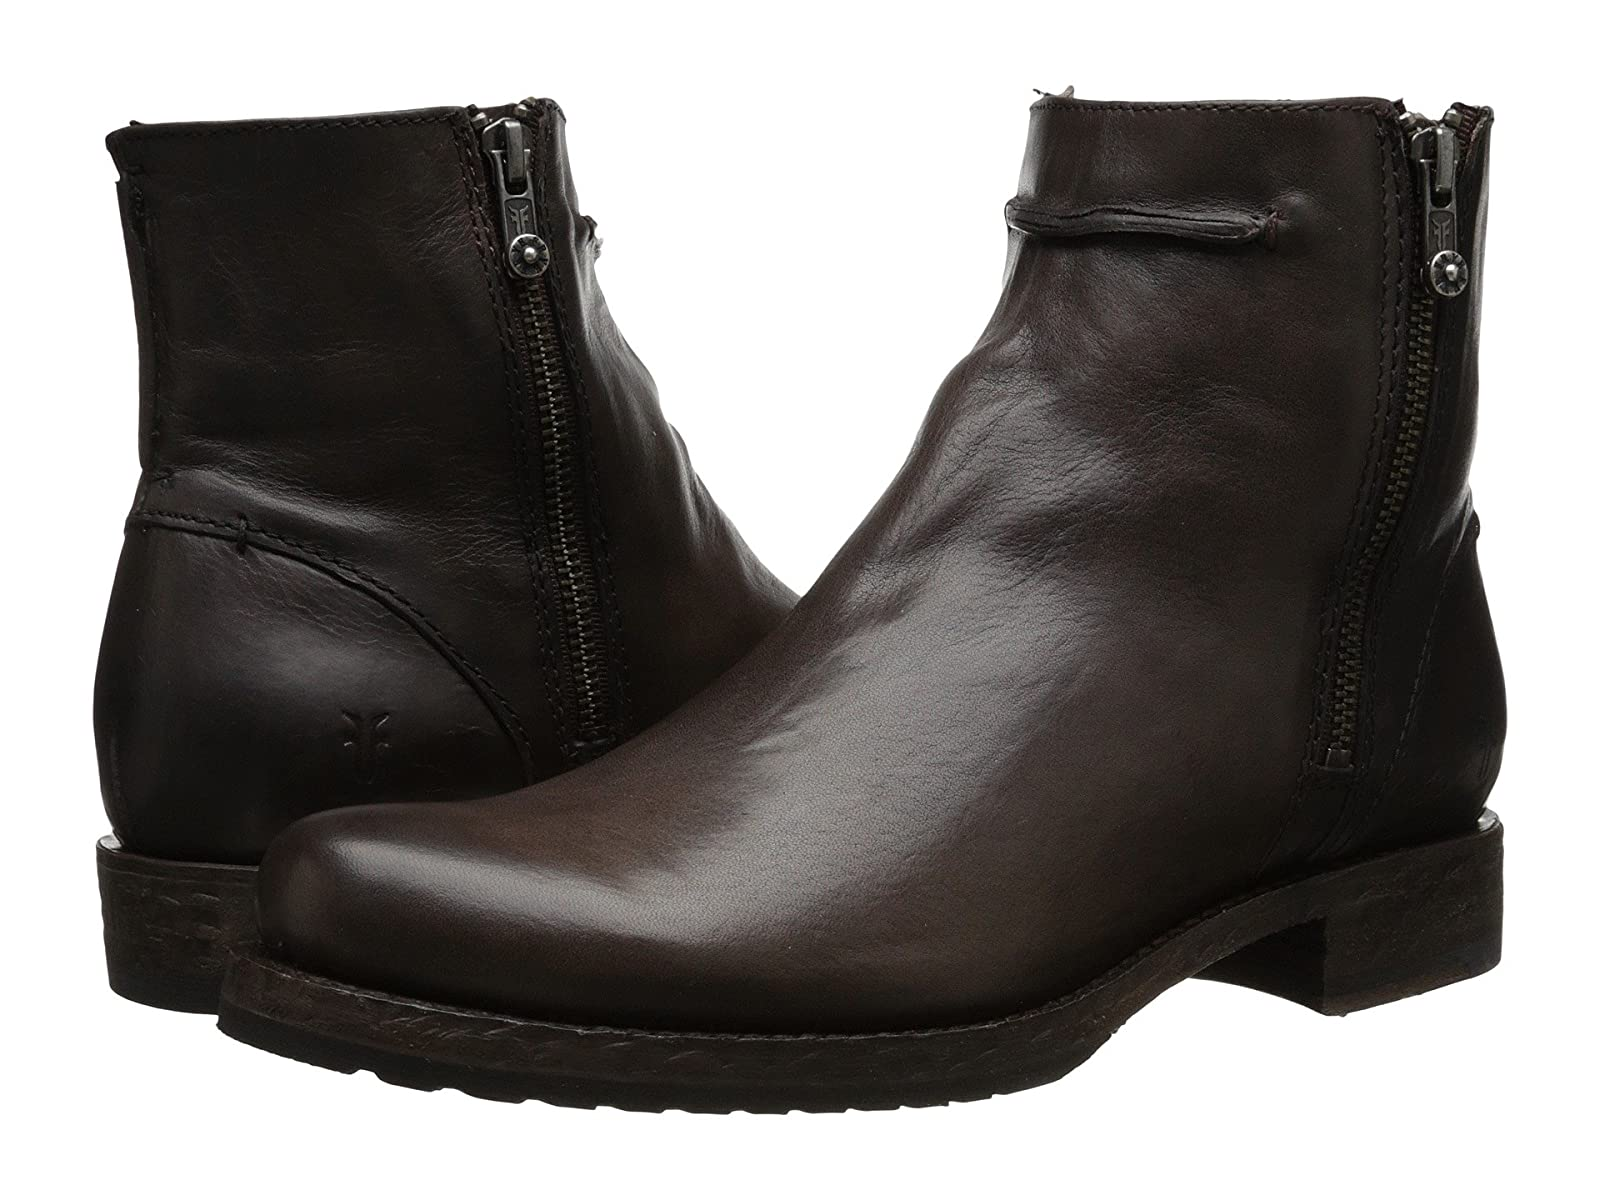 Frye Veronica Seam ShortCheap and distinctive eye-catching shoes